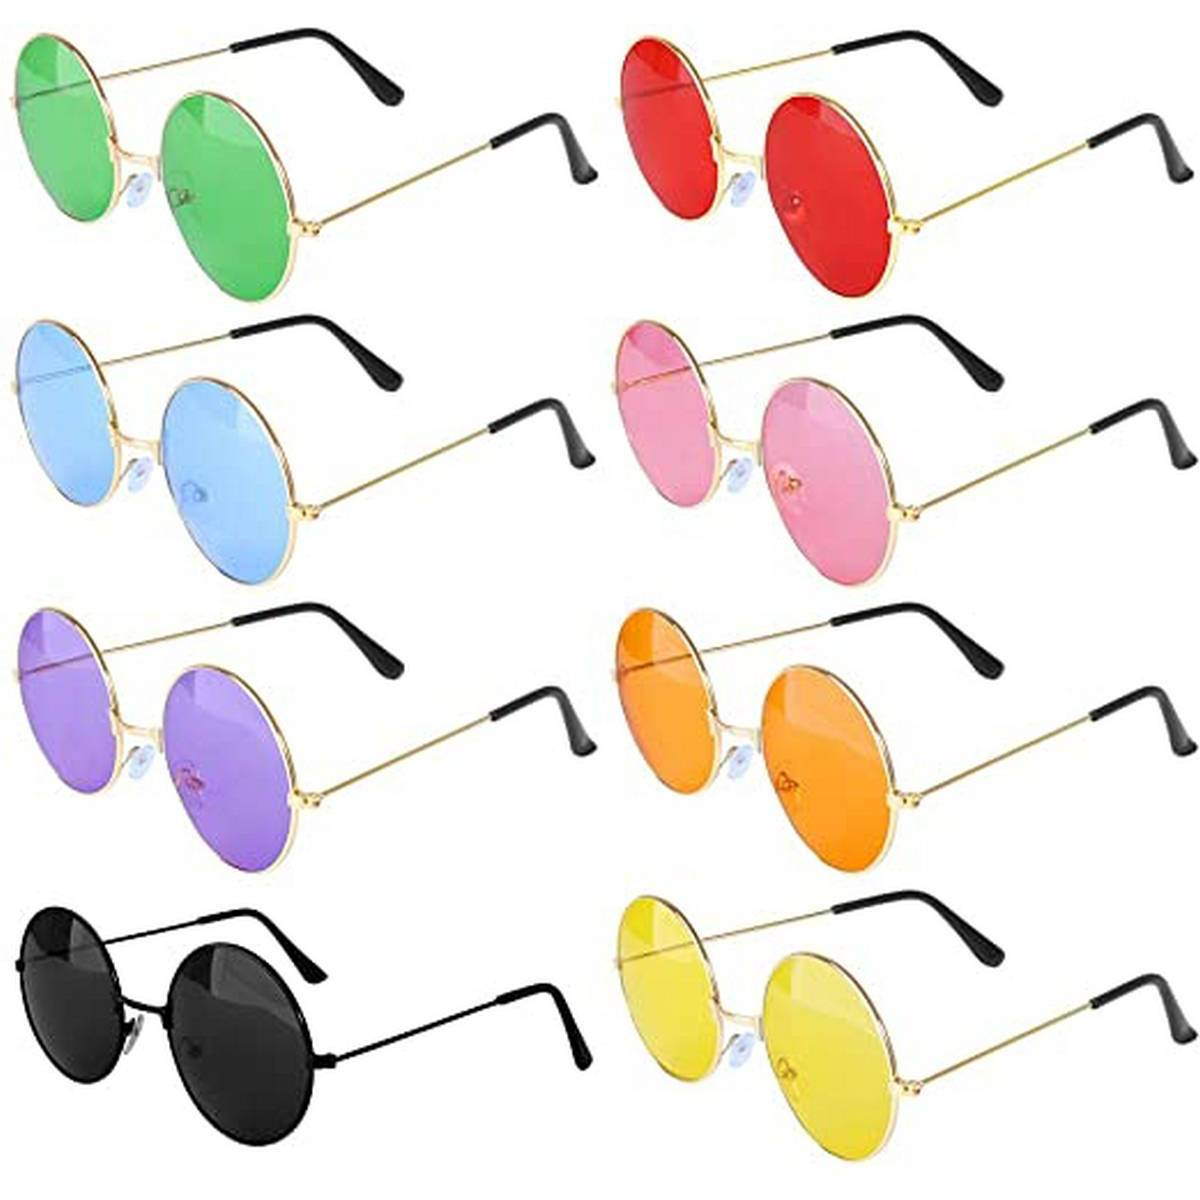 Vintage Round Polarized Hippie Sunglasses Small Circle Round shaped Sun Glasses Shades for men and women